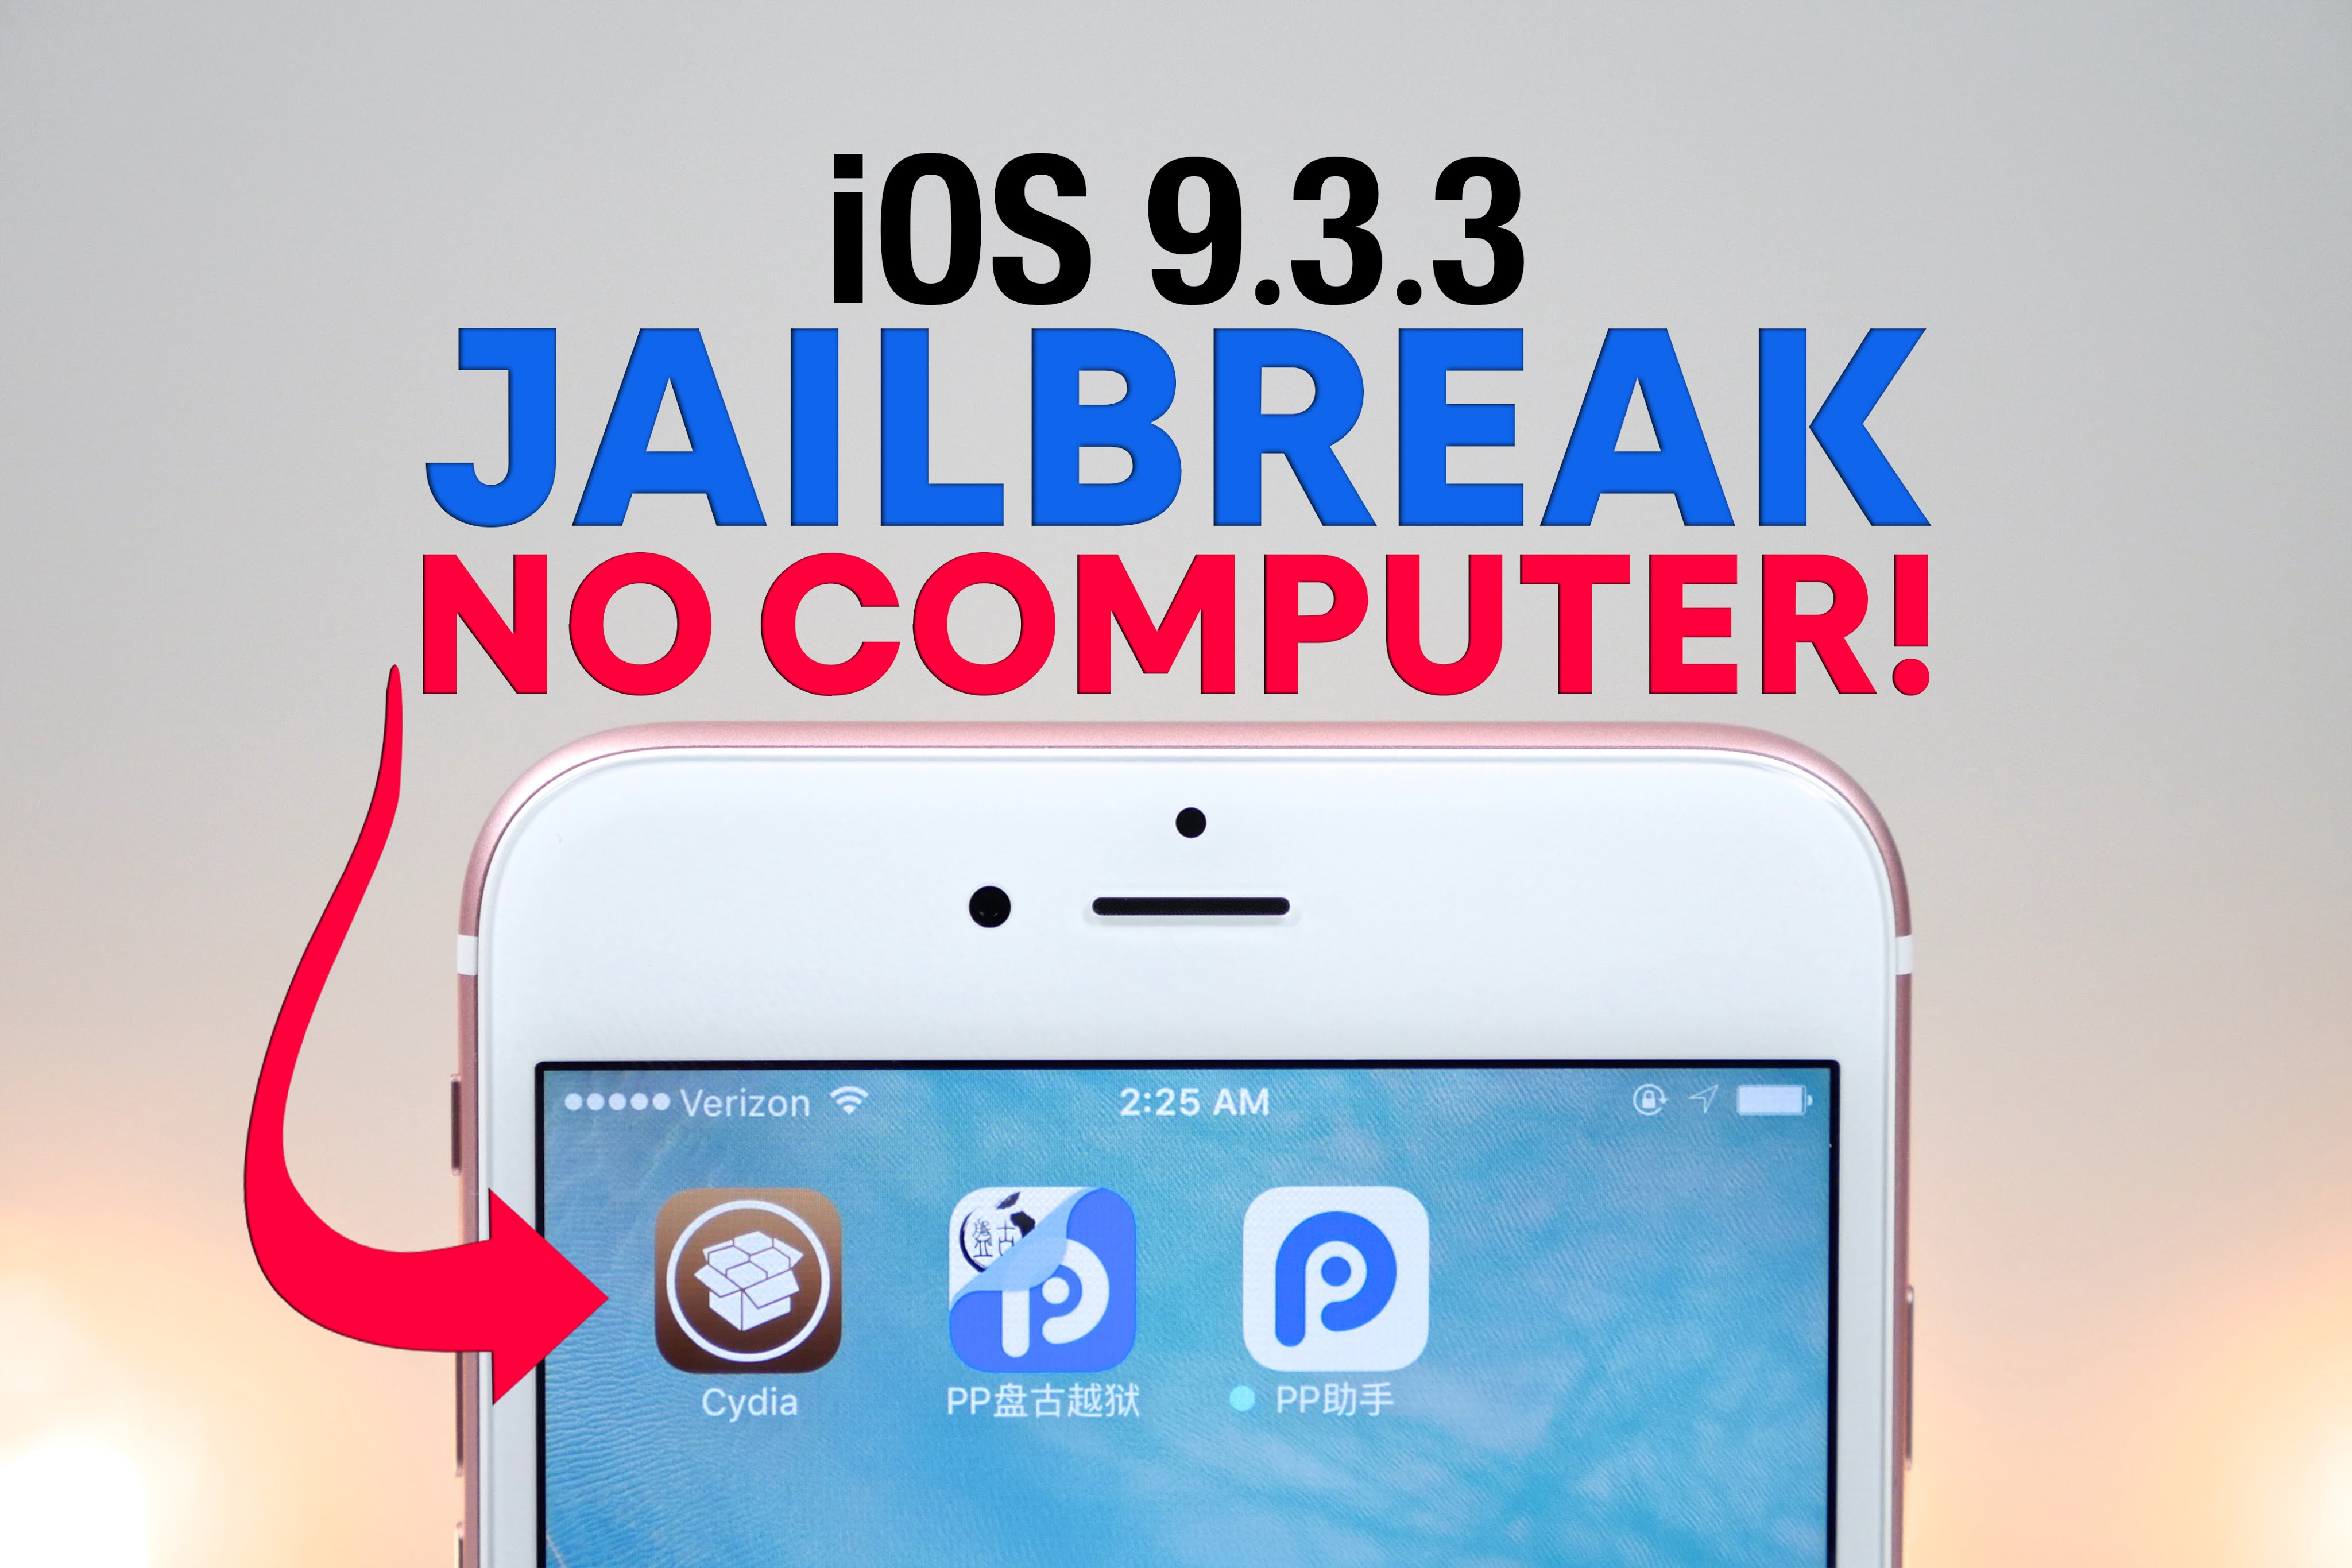 How To Jailbreak iOS 9.3.3? - eLiveStory